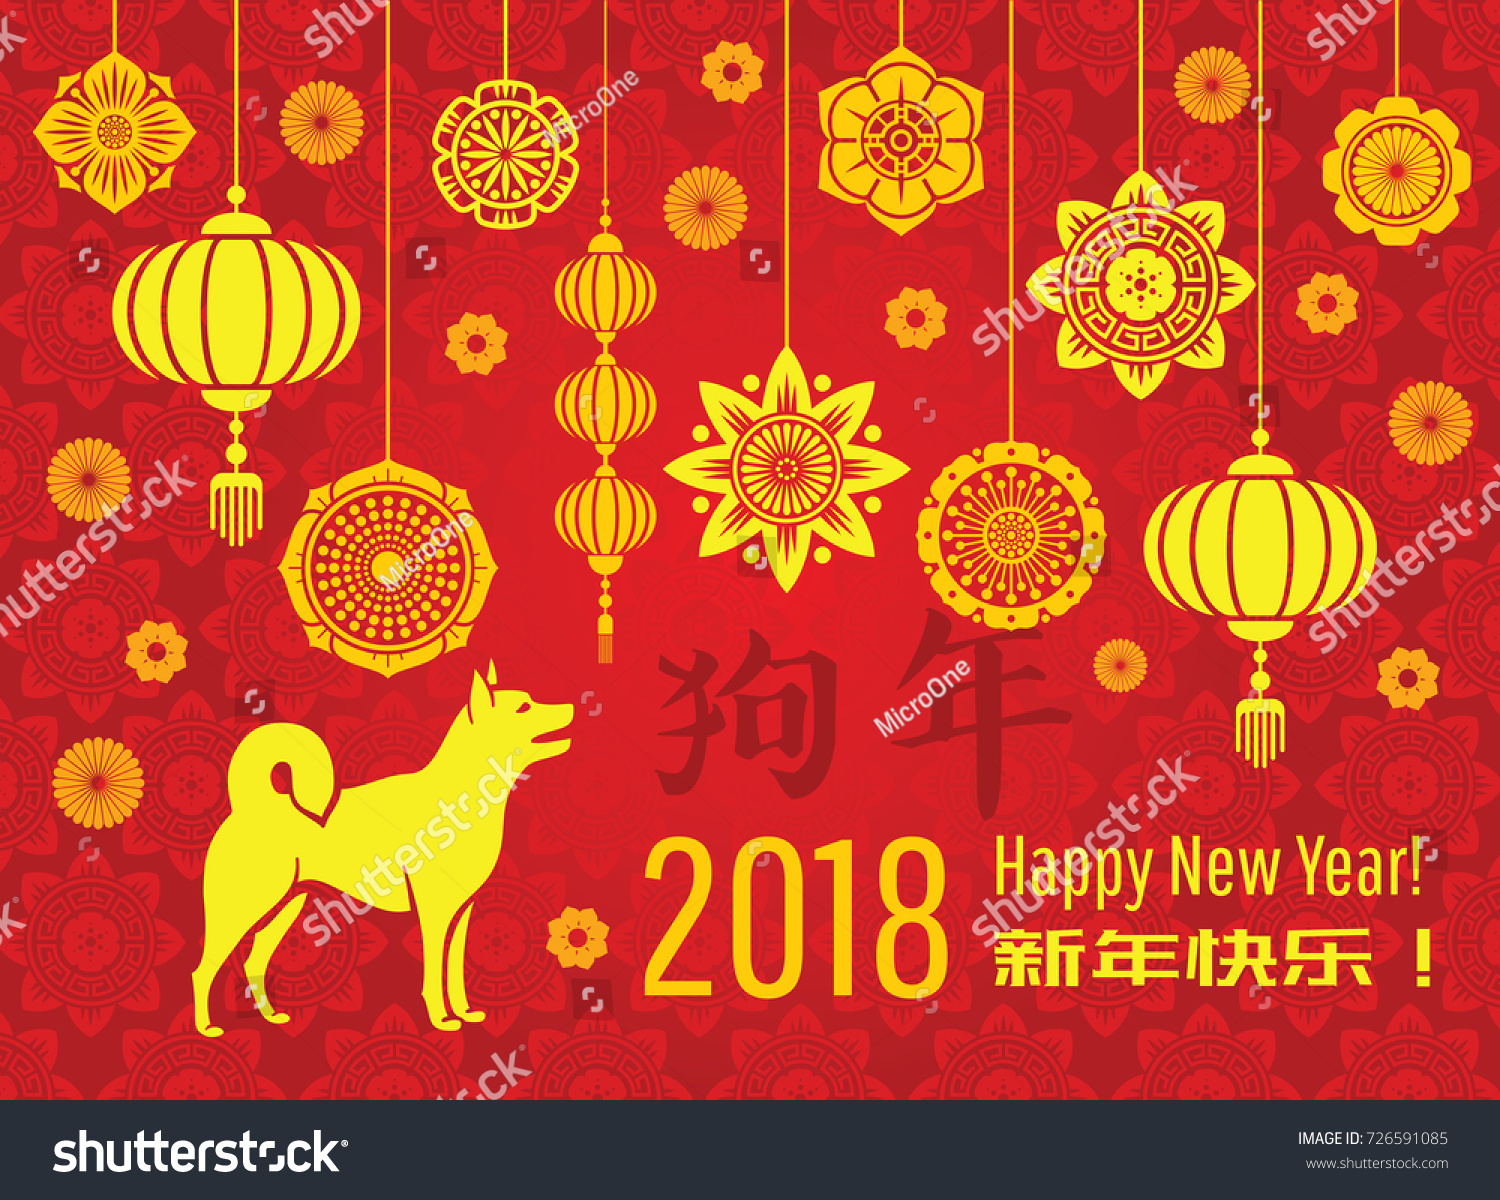 Chinese New Year 2018 Wallpaper Asian Stock-Vektorgrafik (Lizenzfrei ...